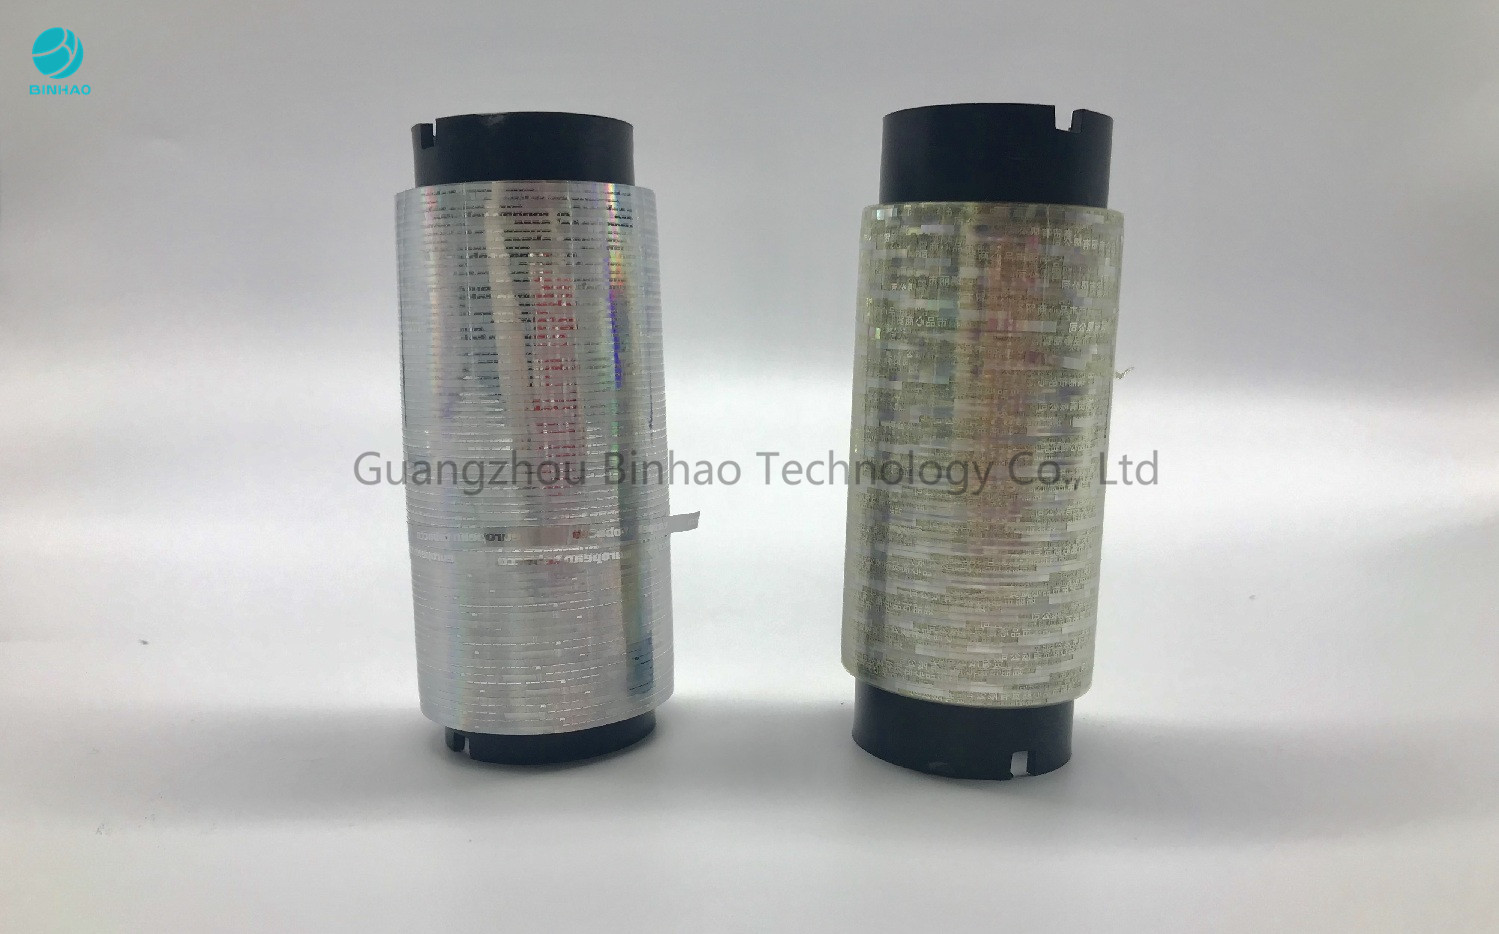 Clear Adhesive Hot Melt Tobacco Tear Tape With Holographic Craft Shiny Gold 10000m Length